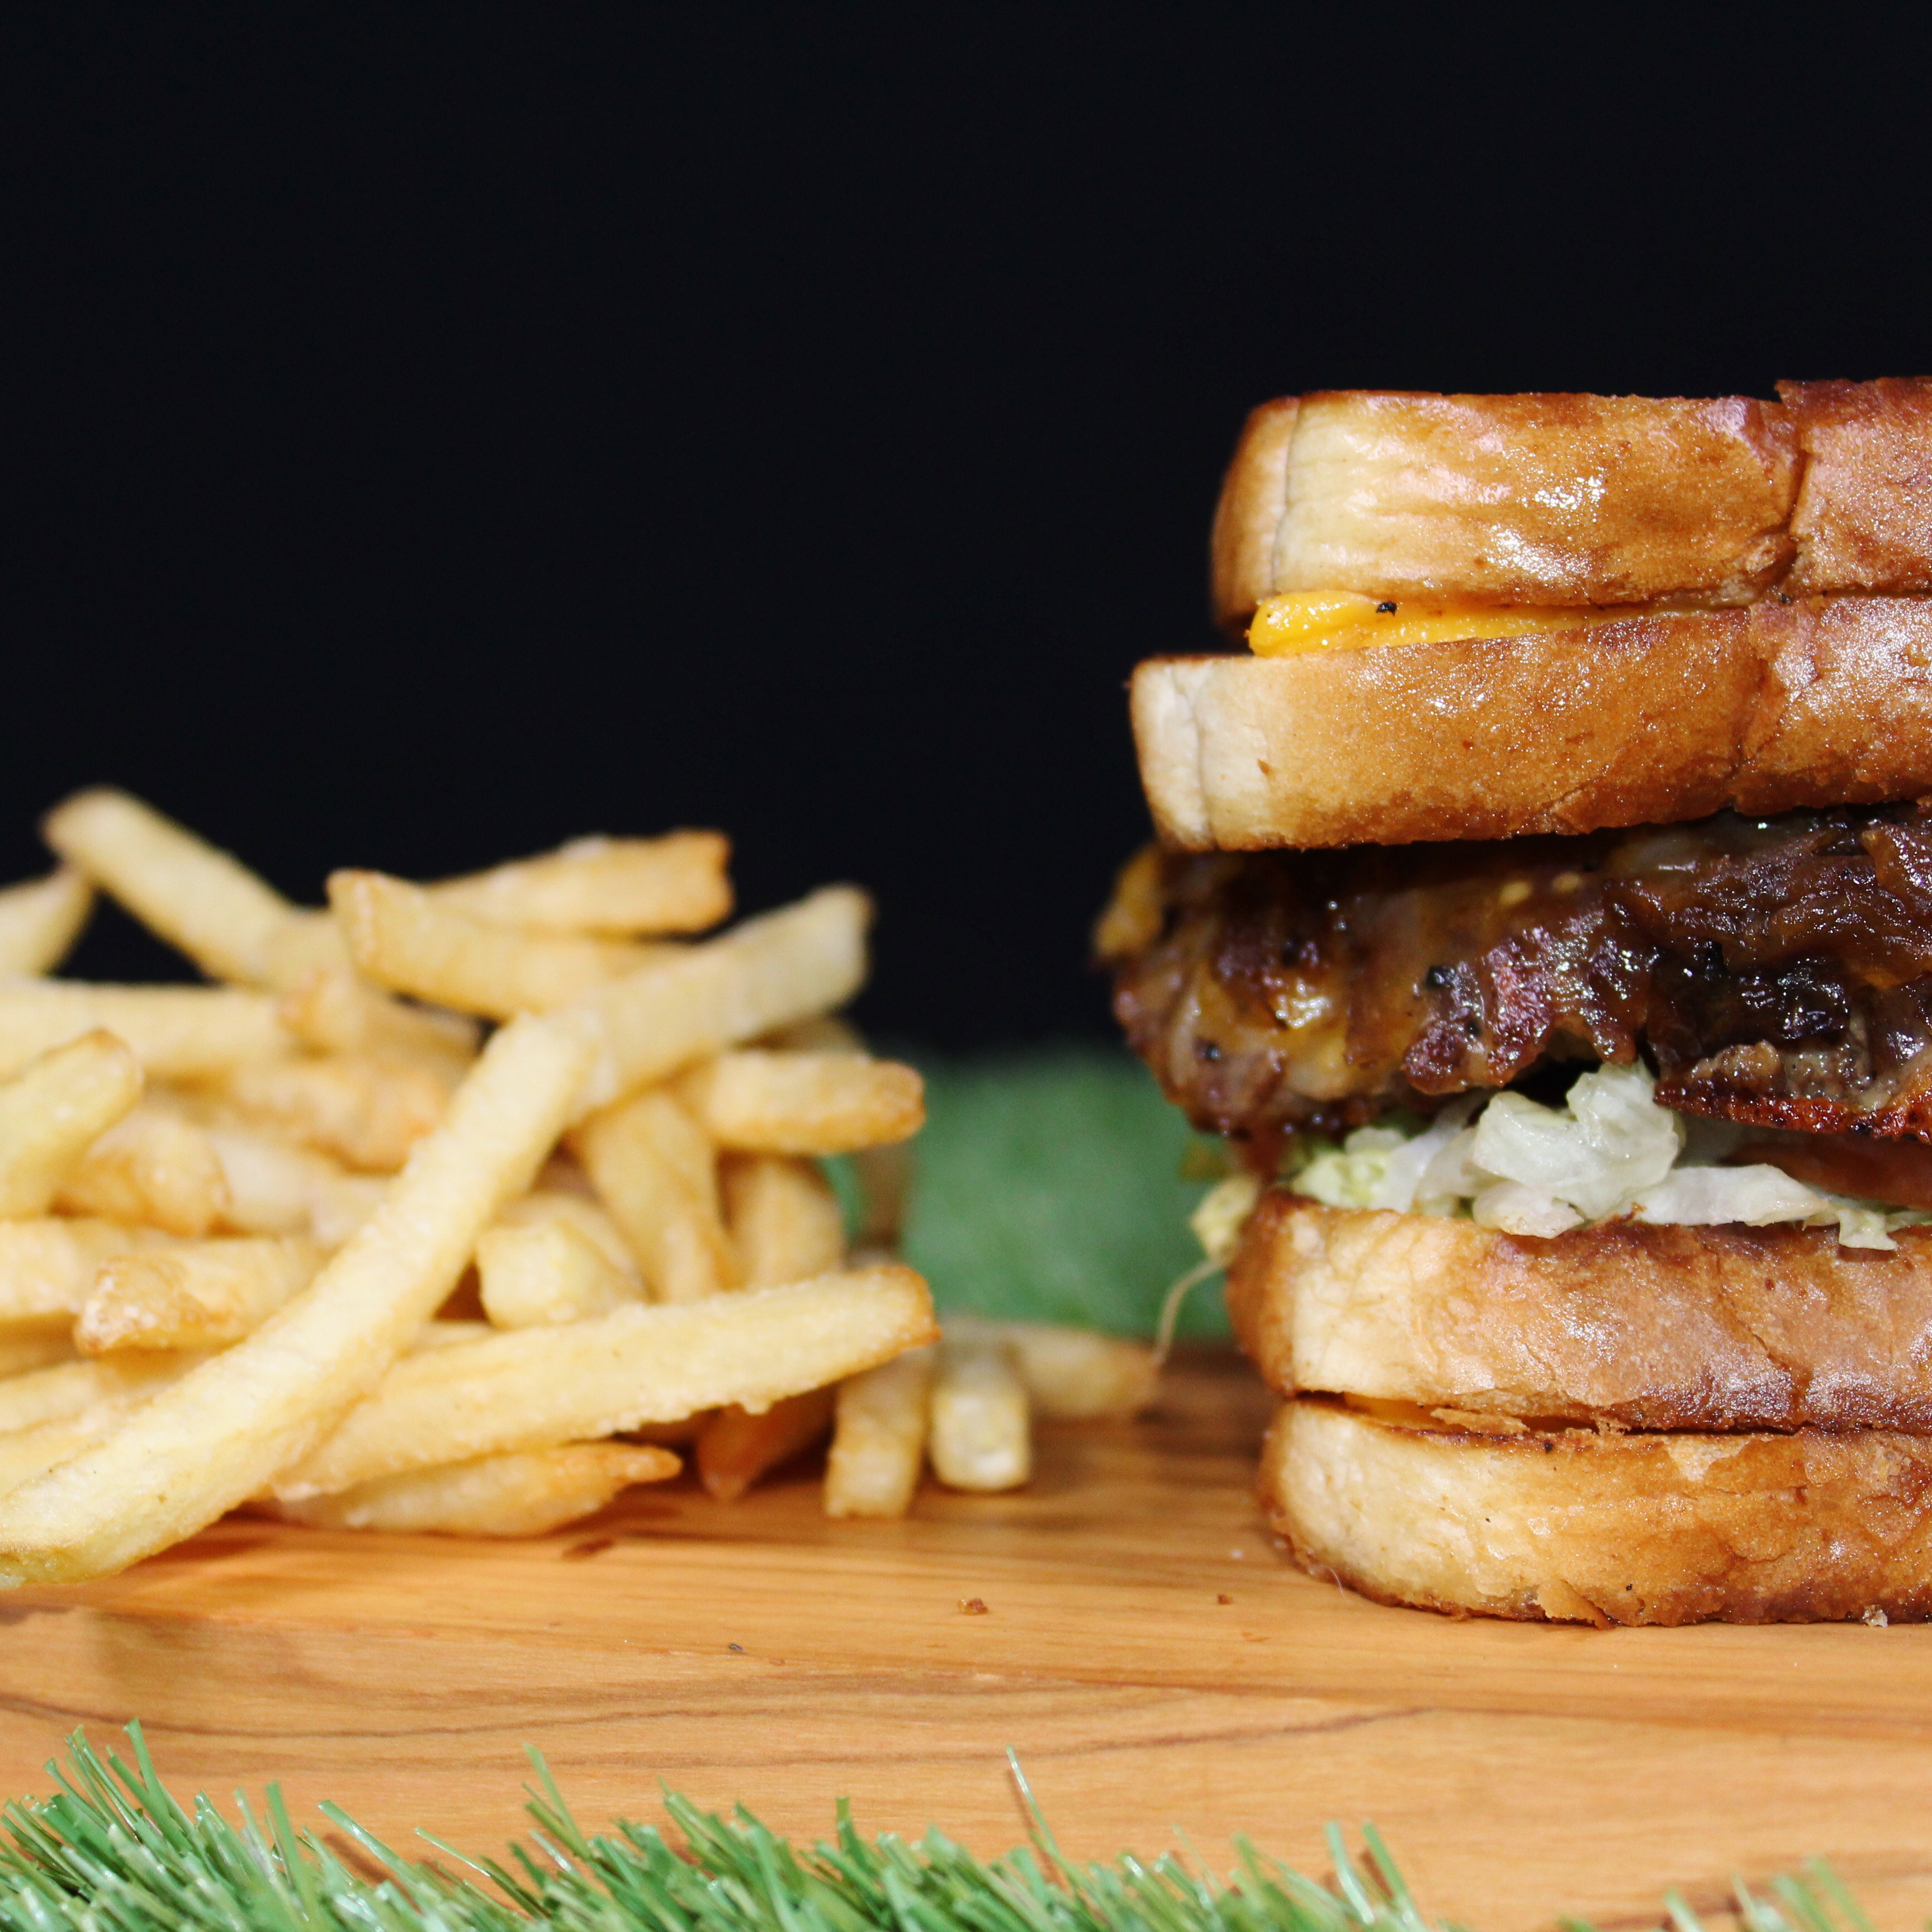 Grilled Cheese Burger and Fries